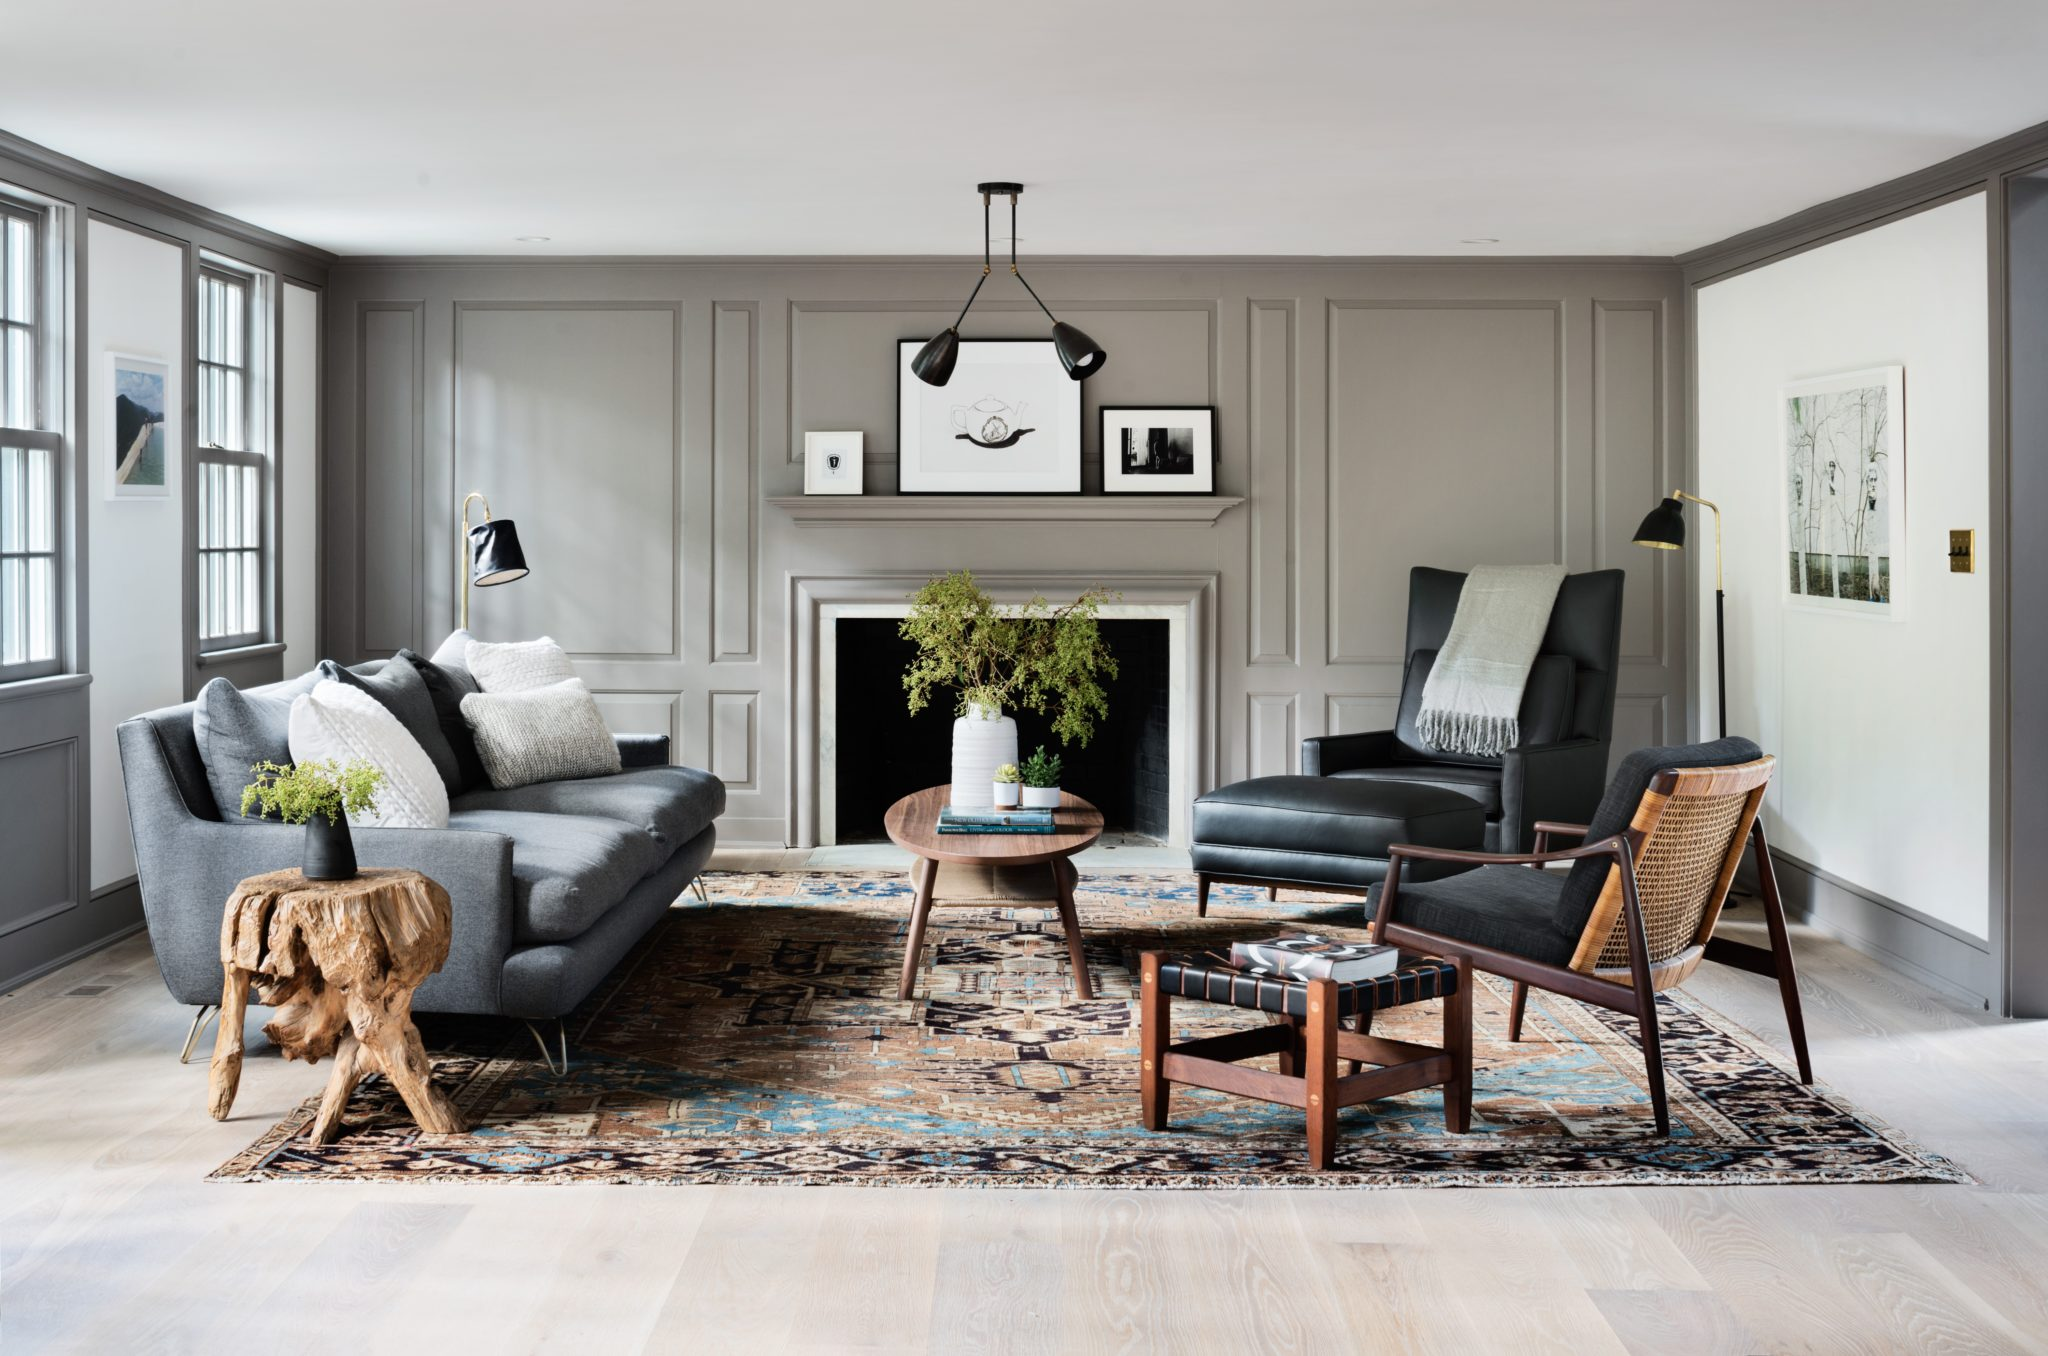 The living room's custom sofa by Montauk is upholstered in a Holland and Sherry fabric; the chairs and rug are vintage. New white oak flooring was installed throughout the house, and the walls, paneling, and trim in each room is painted in Farrow and Ball colors.